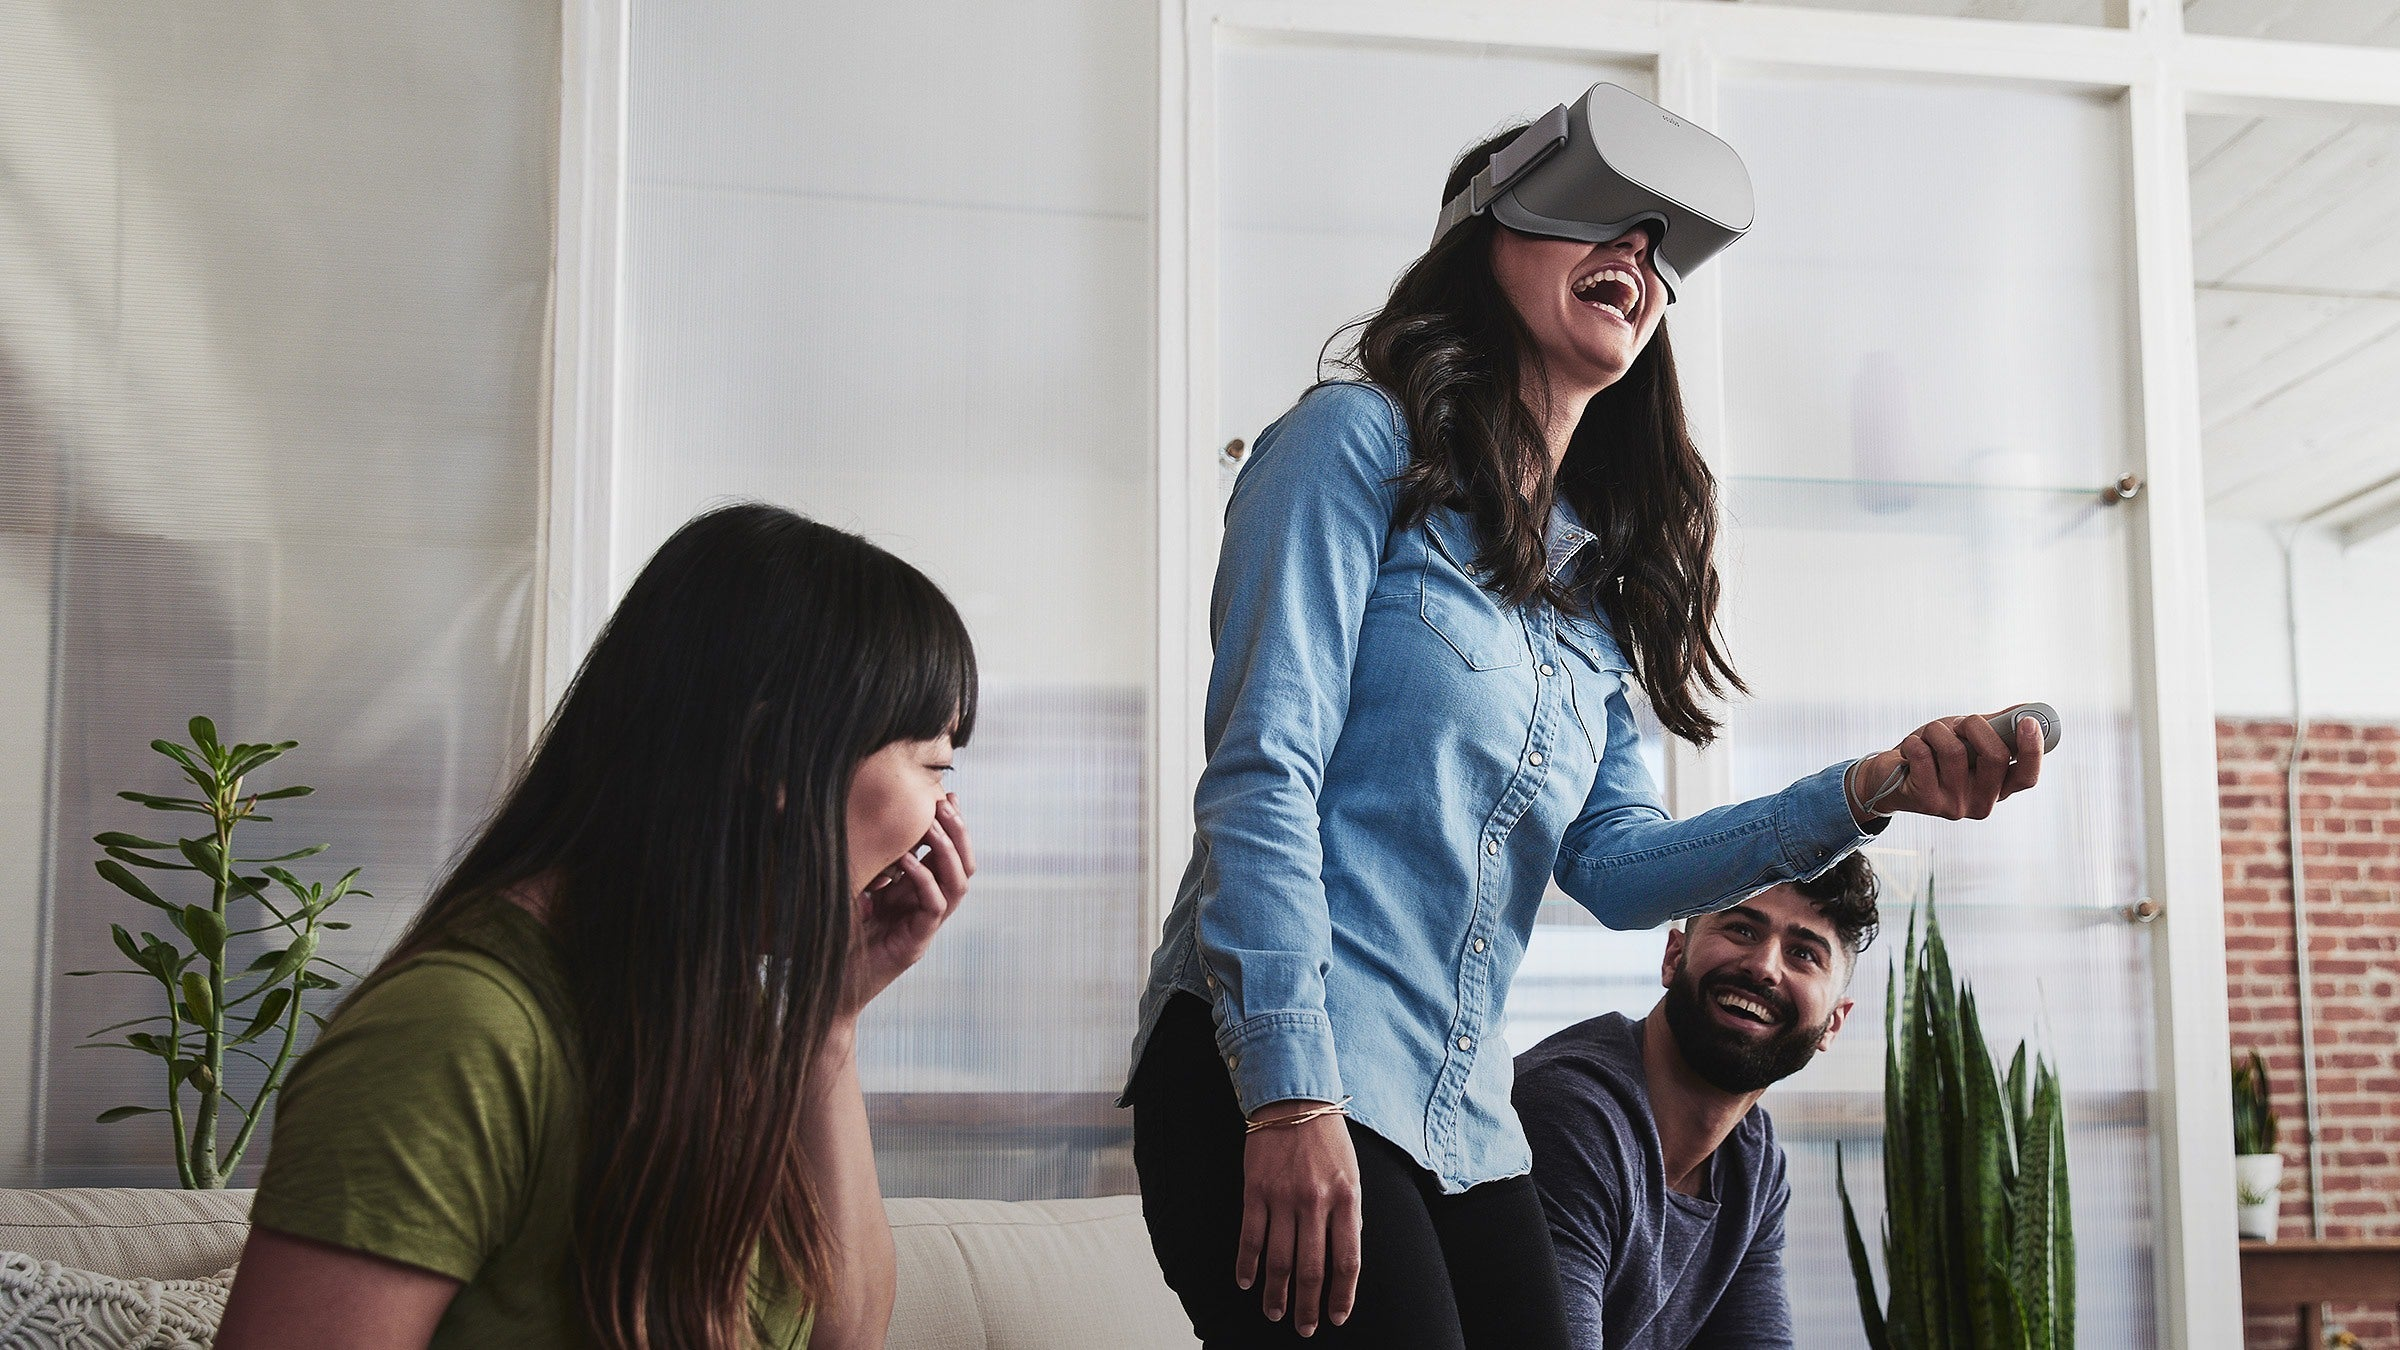 You Can Now Buy Facebook's Phone-Free Oculus Go VR Headset